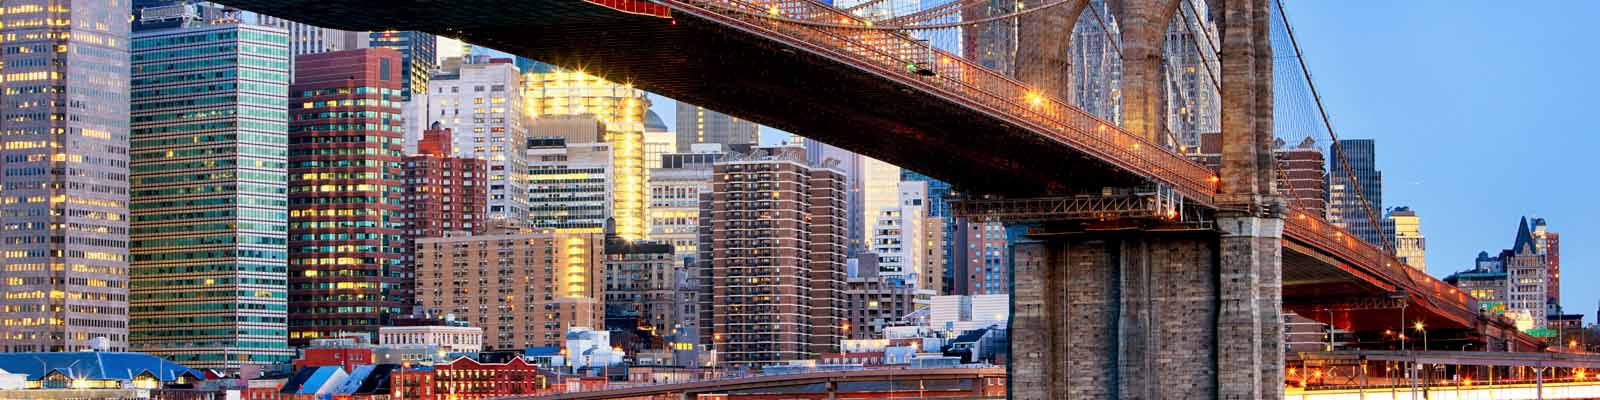 Pictured: A bridge and downtown New York City.